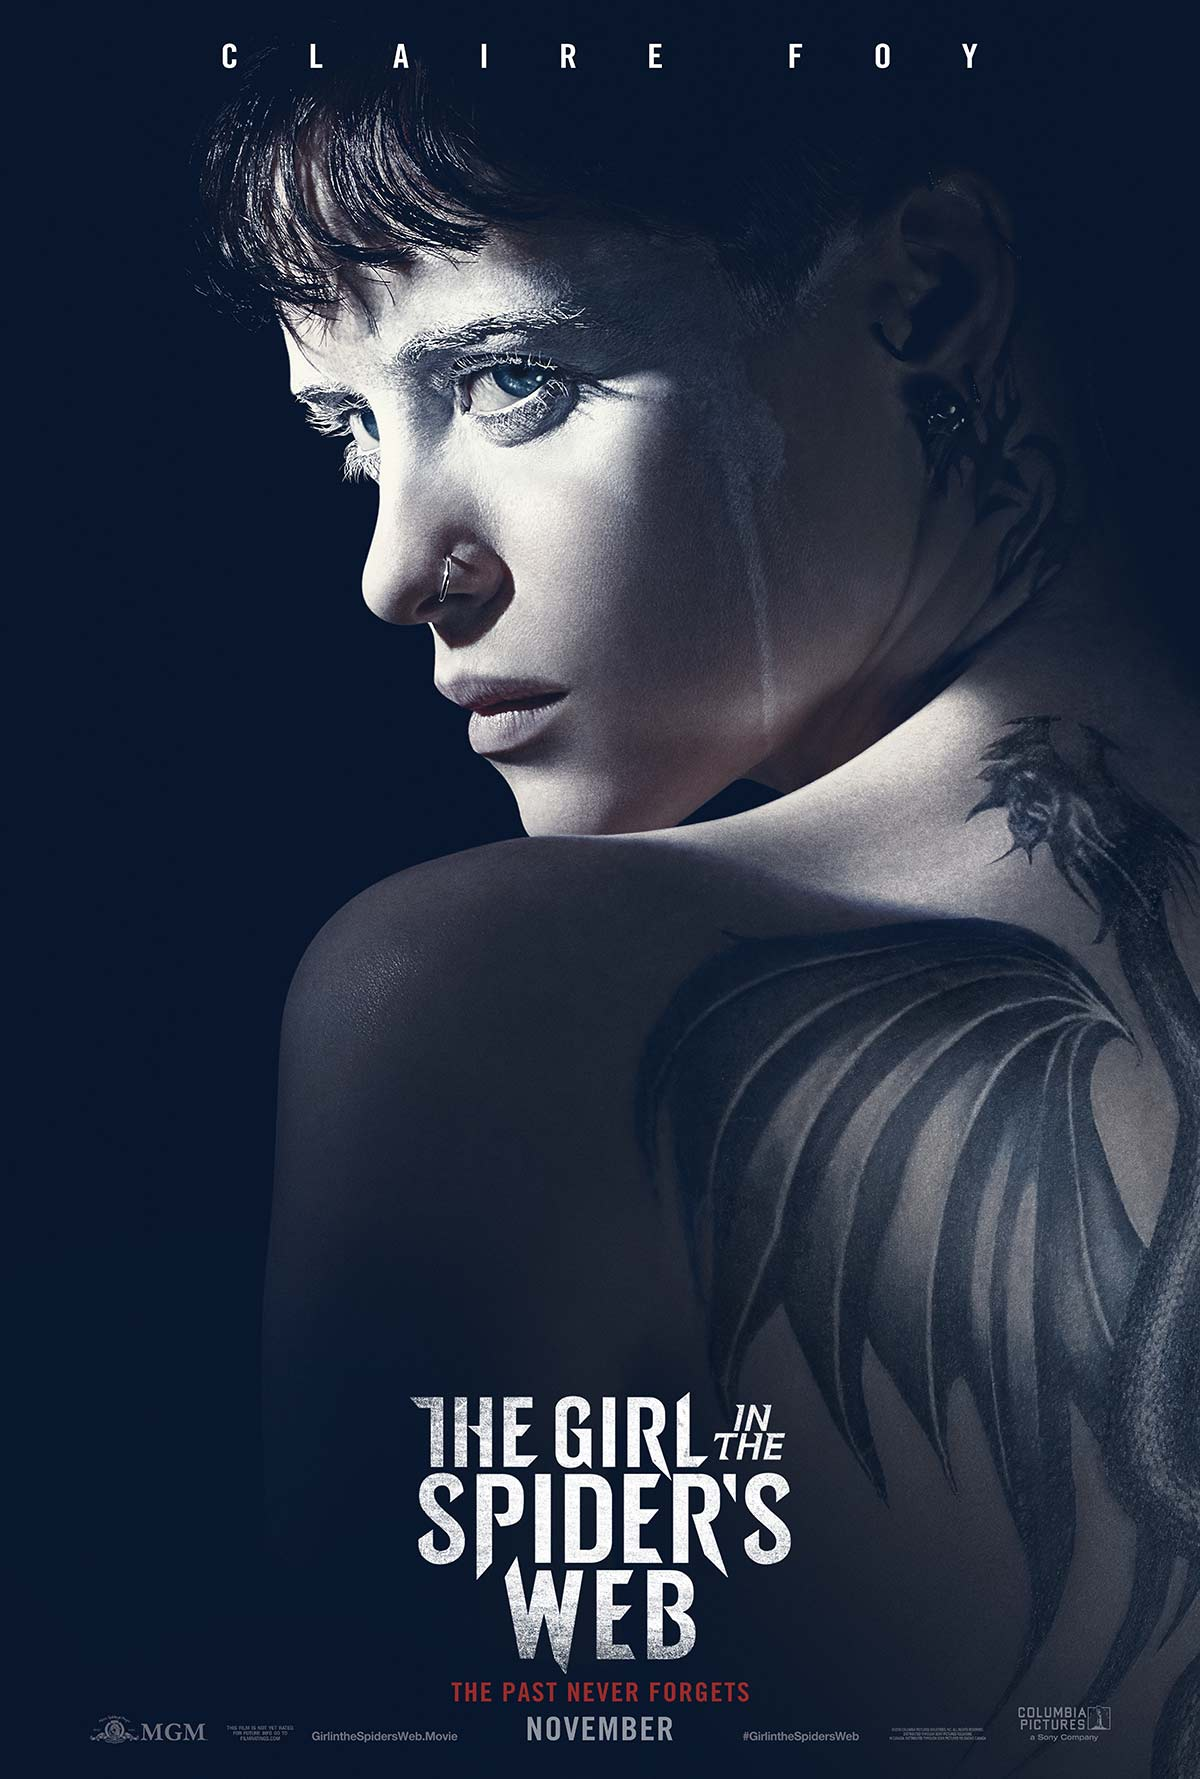 Official trailer – THE GIRL IN THE SPIDER'S WEB